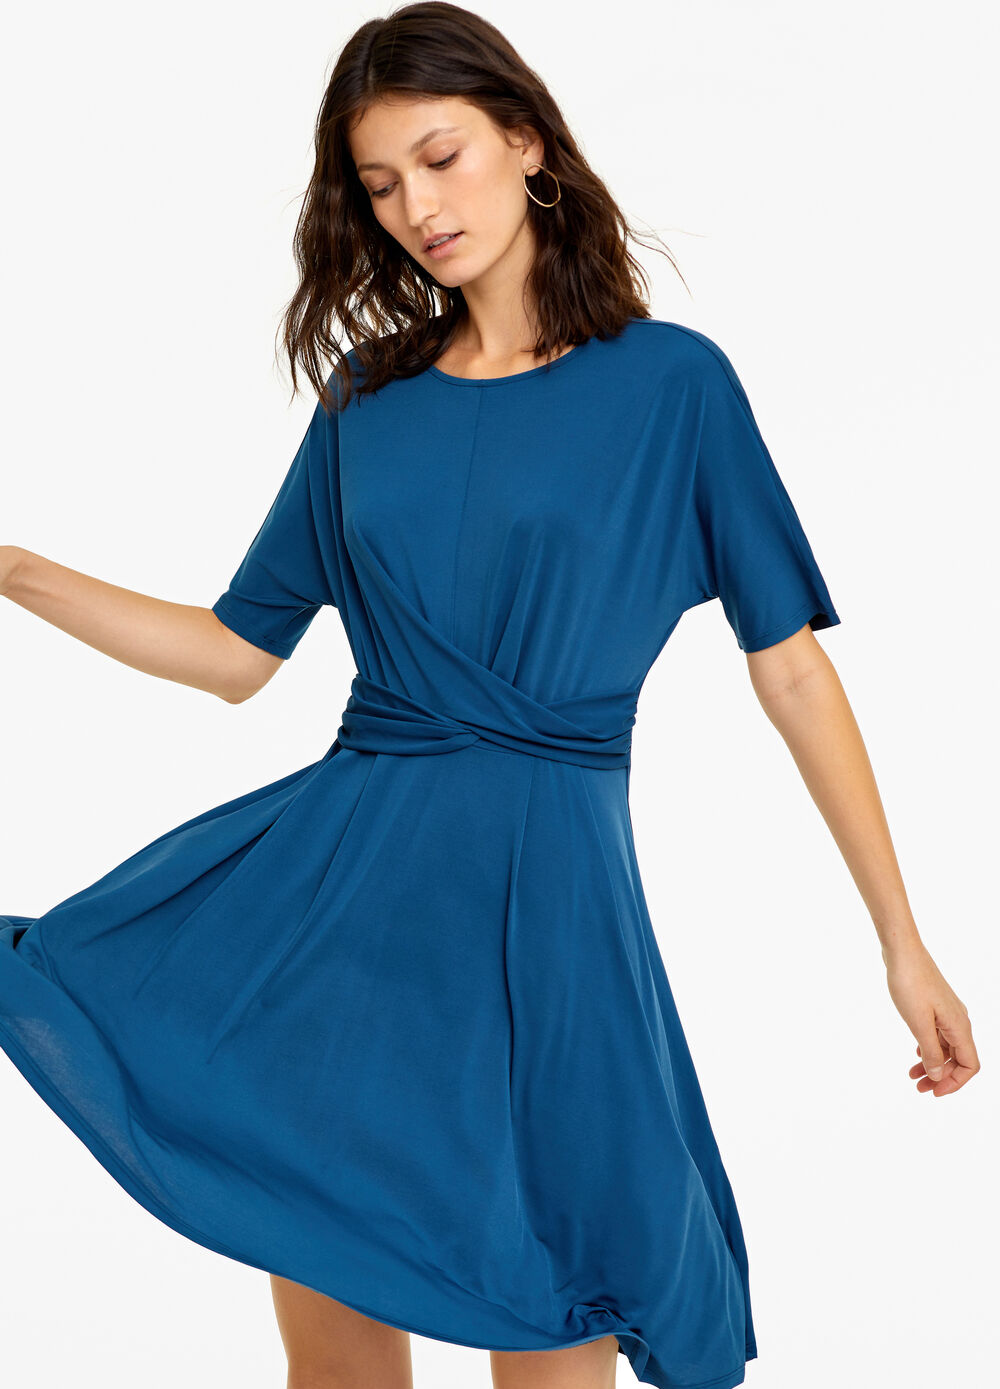 Stretch dress with crossover